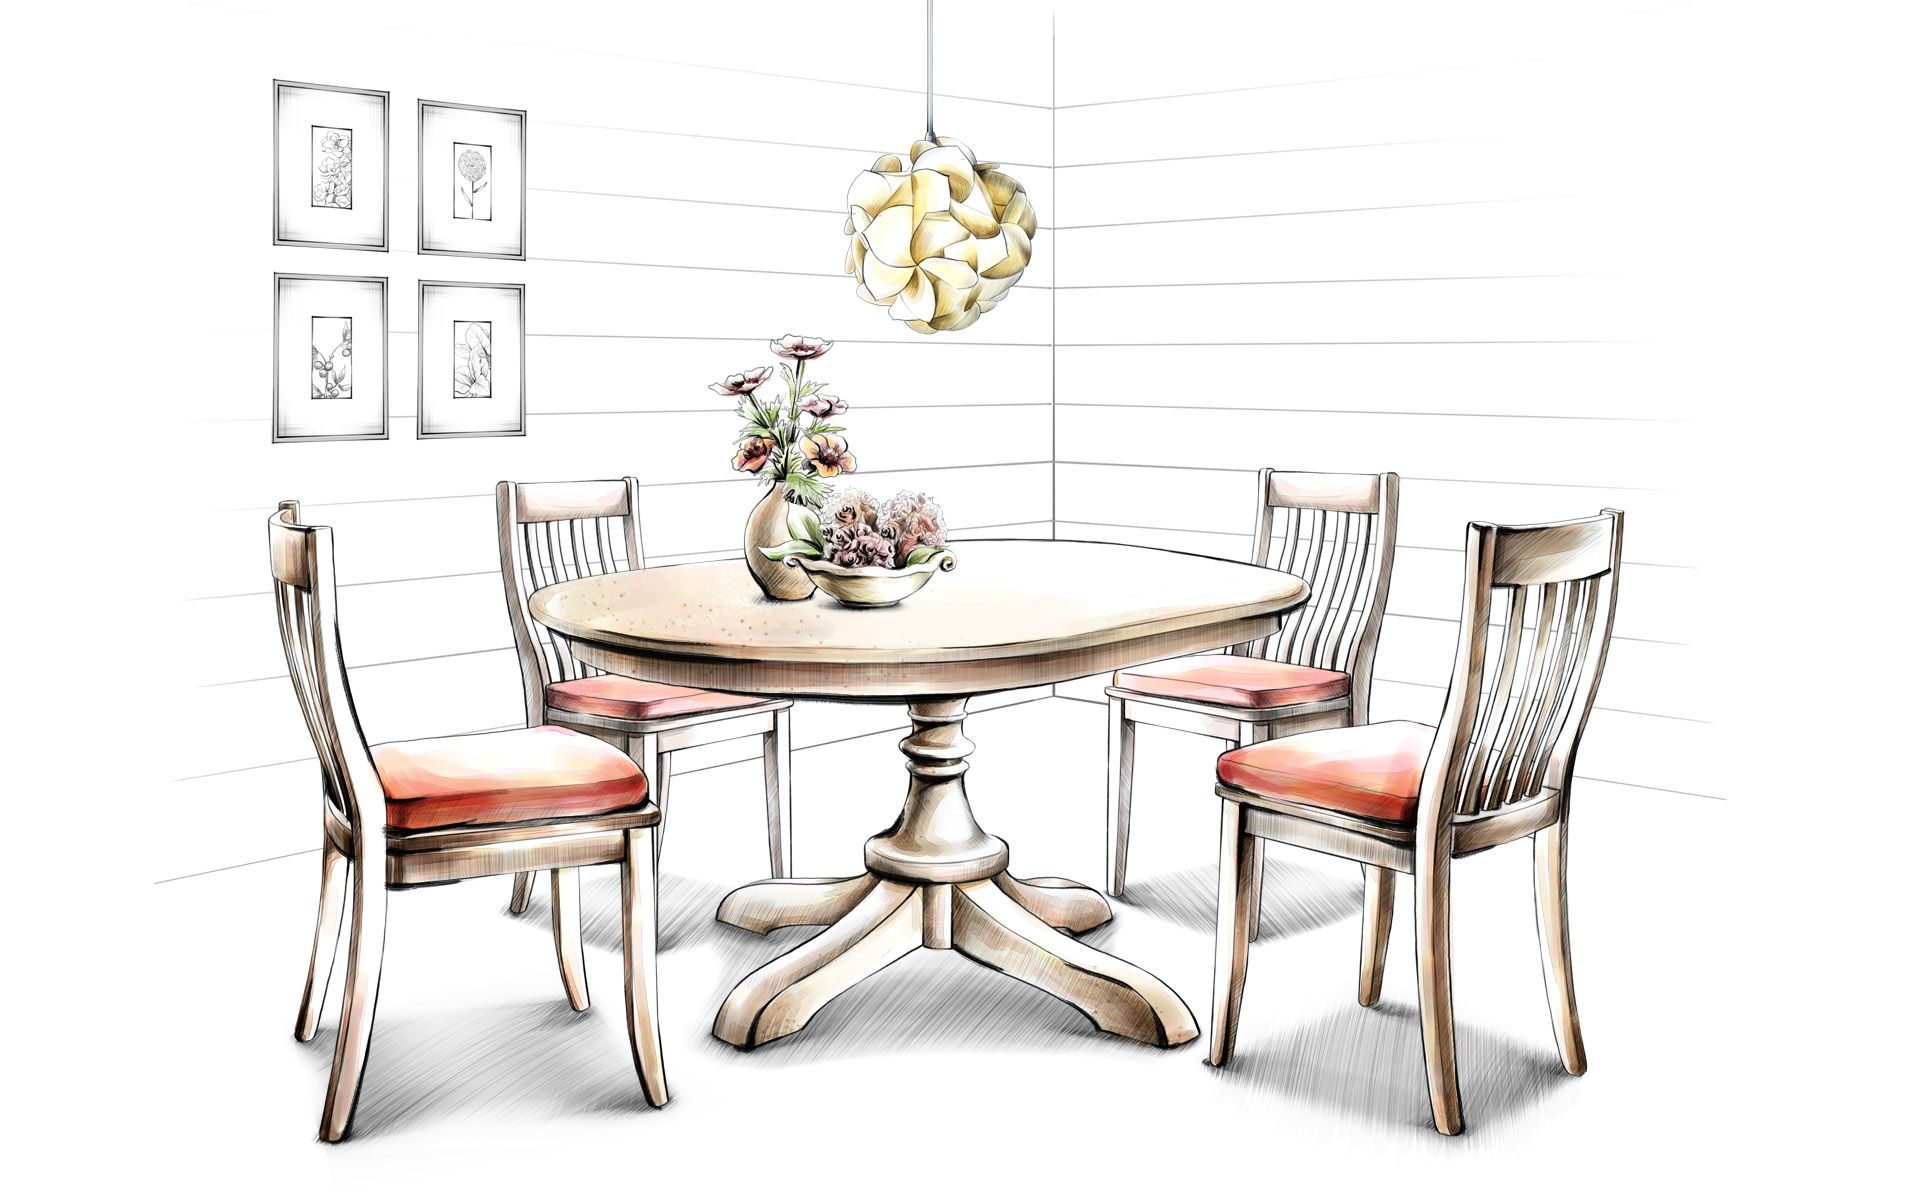 Dining room perspective drawing hand drawing home interior  sketch  pinterest  hand drawings